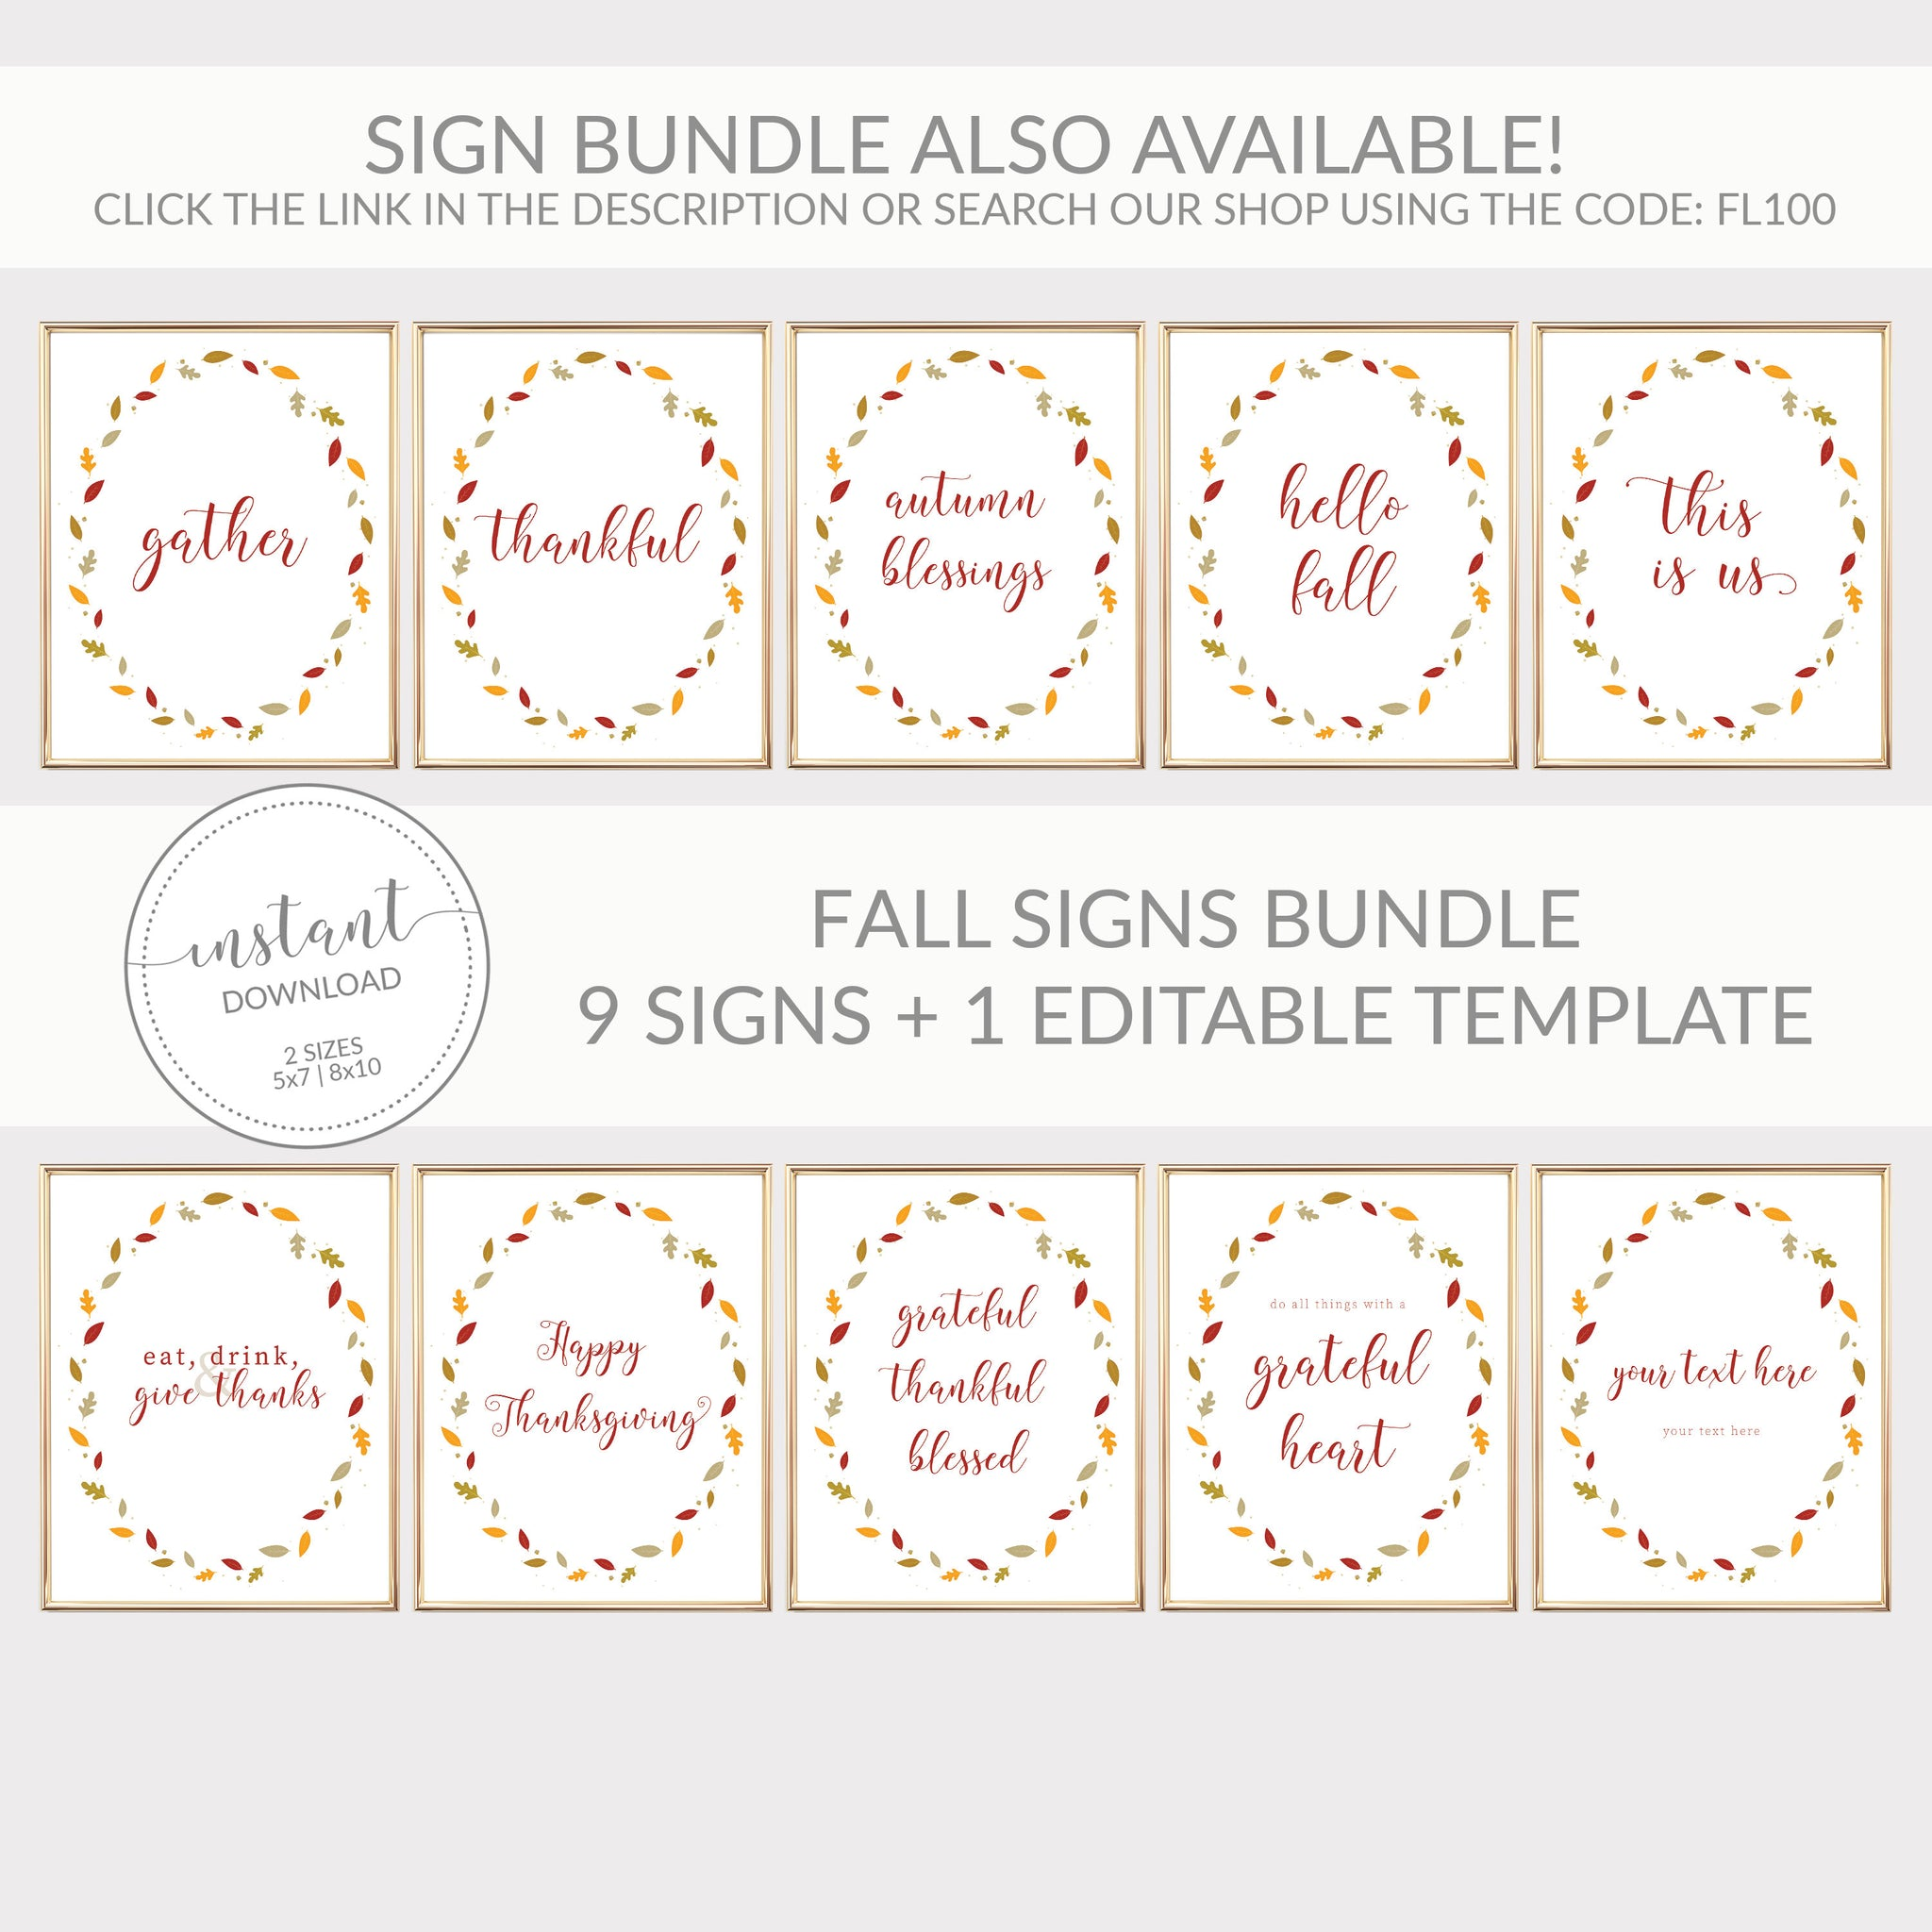 Thankful Sign Printable, Thanksgiving Decor, Thanksgiving Signs Printable, Front Entrance Decor, INSTANT DOWNLOAD - FL100 - @PlumPolkaDot